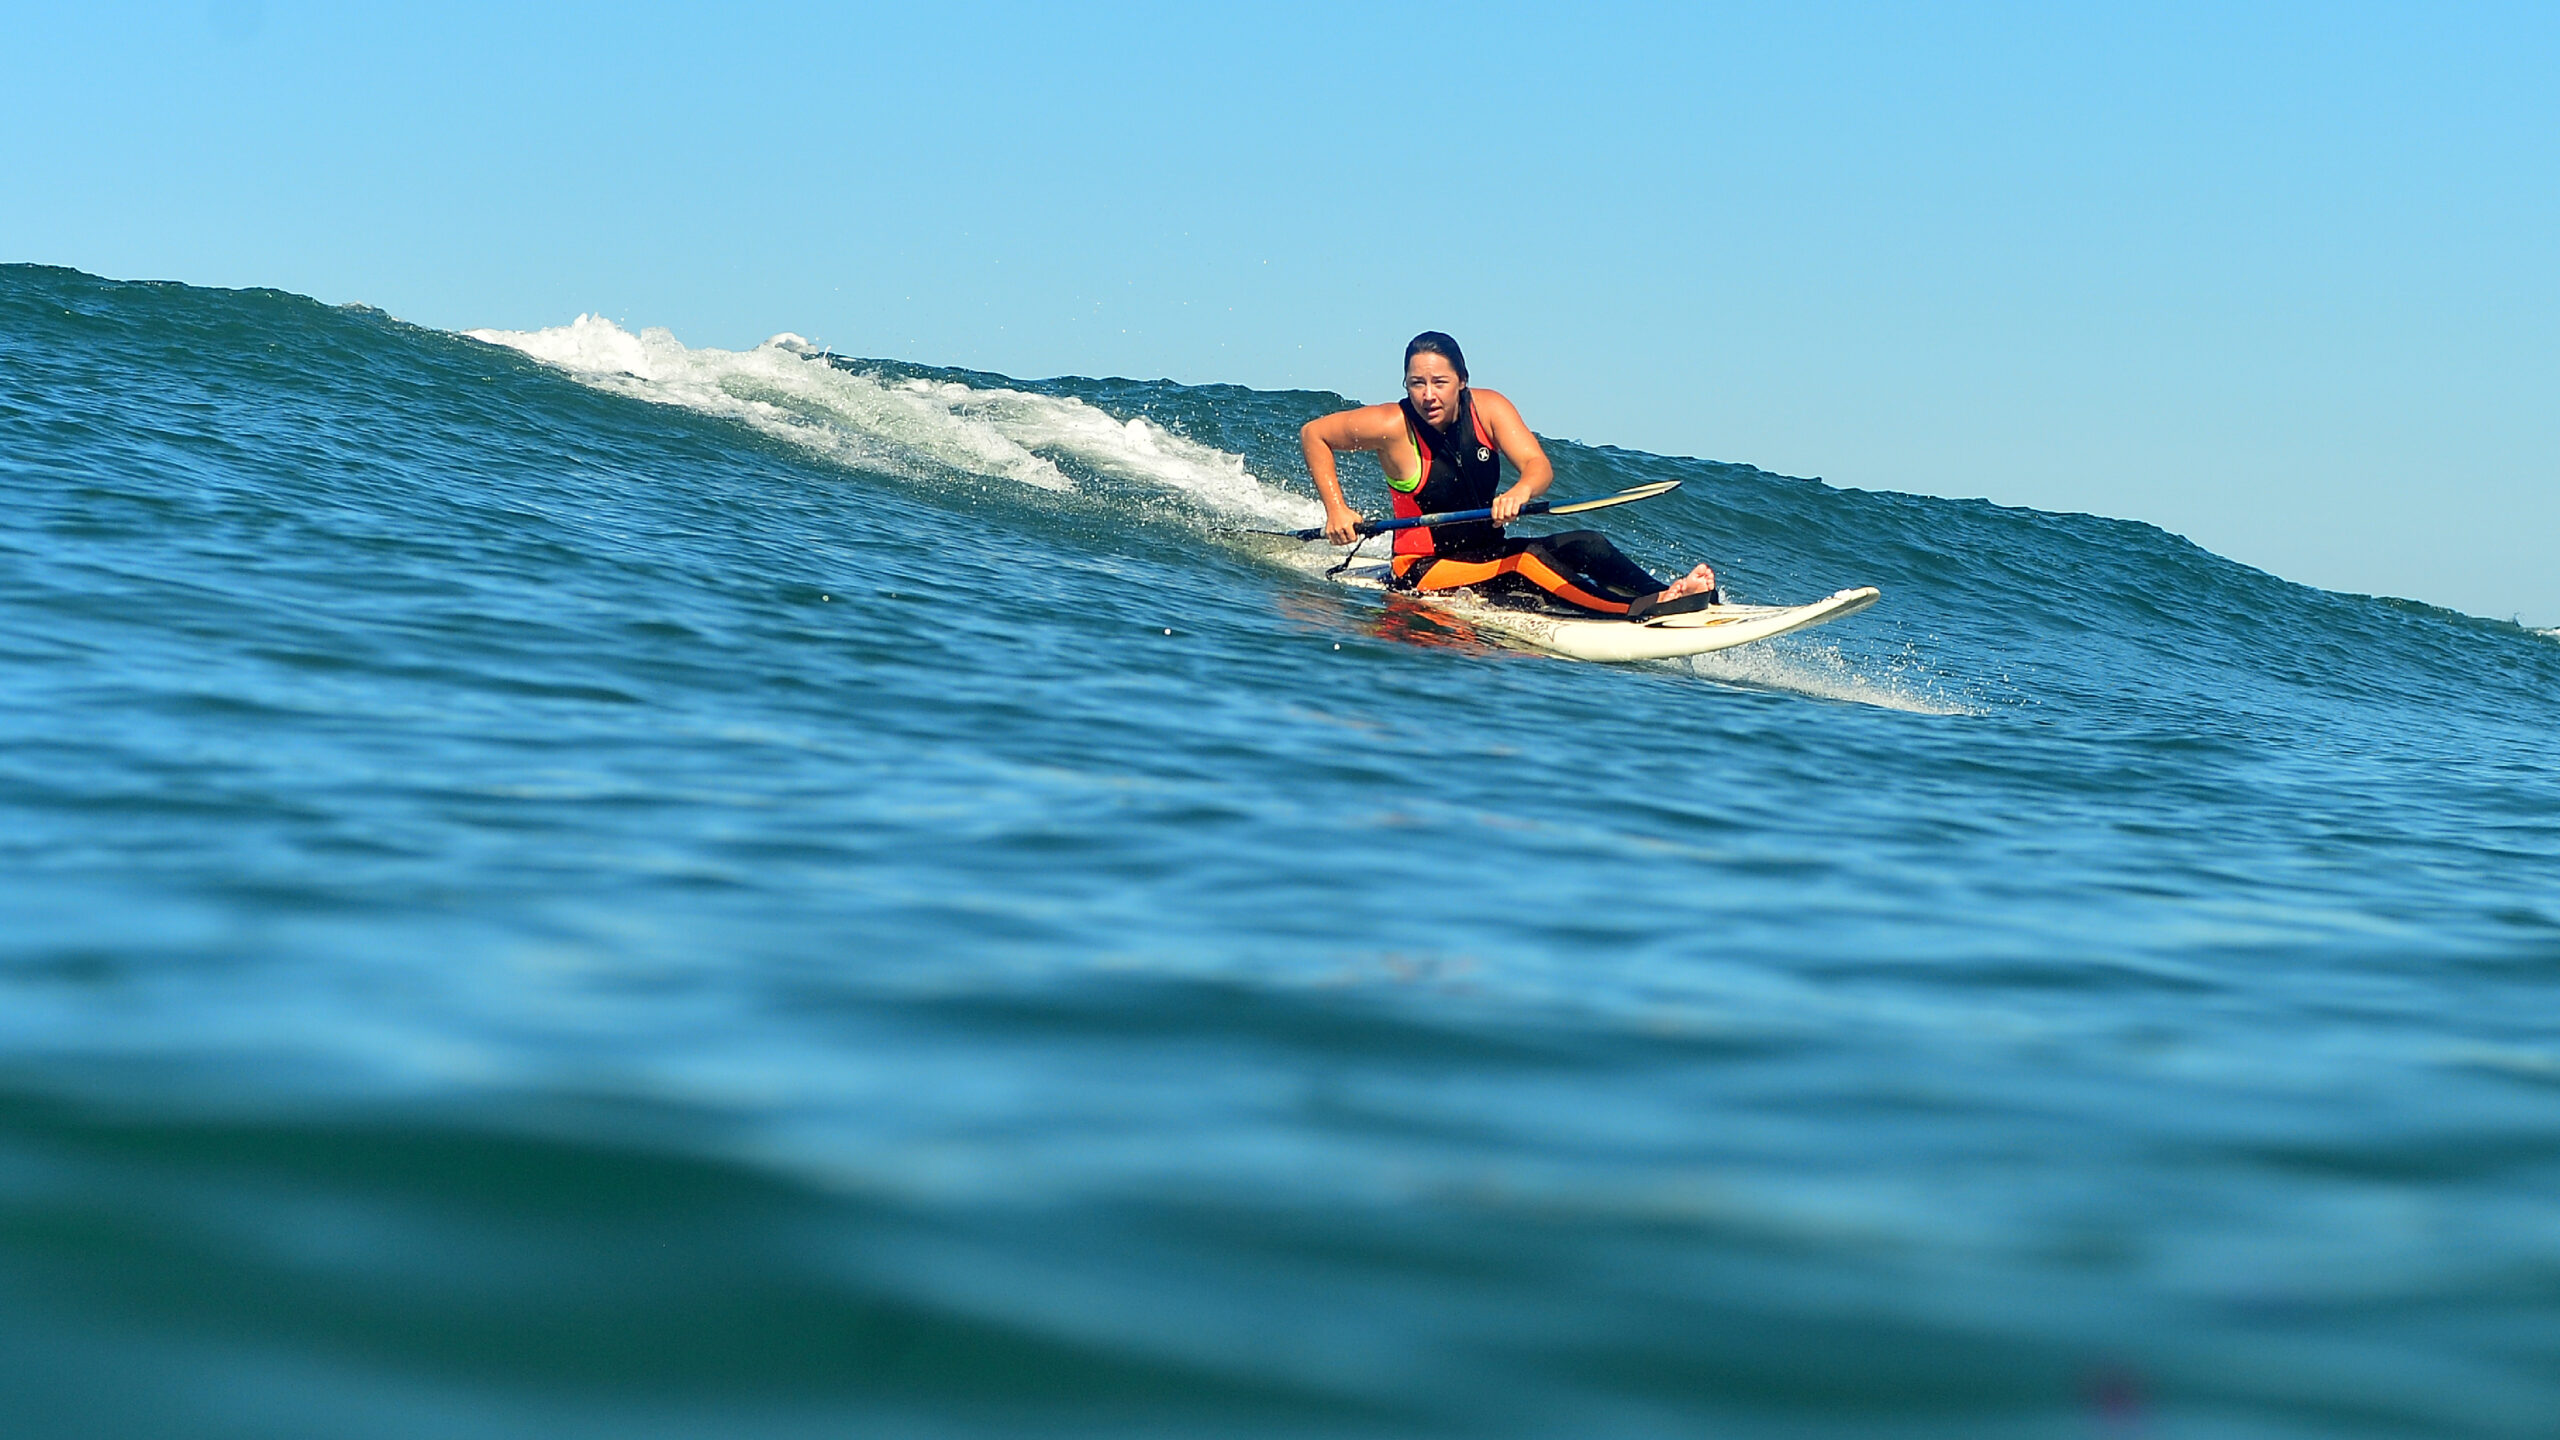 Alana Nichols, a five-time Paralympian, participates in adaptive surfing. Photo: Robert Beck/ESPN